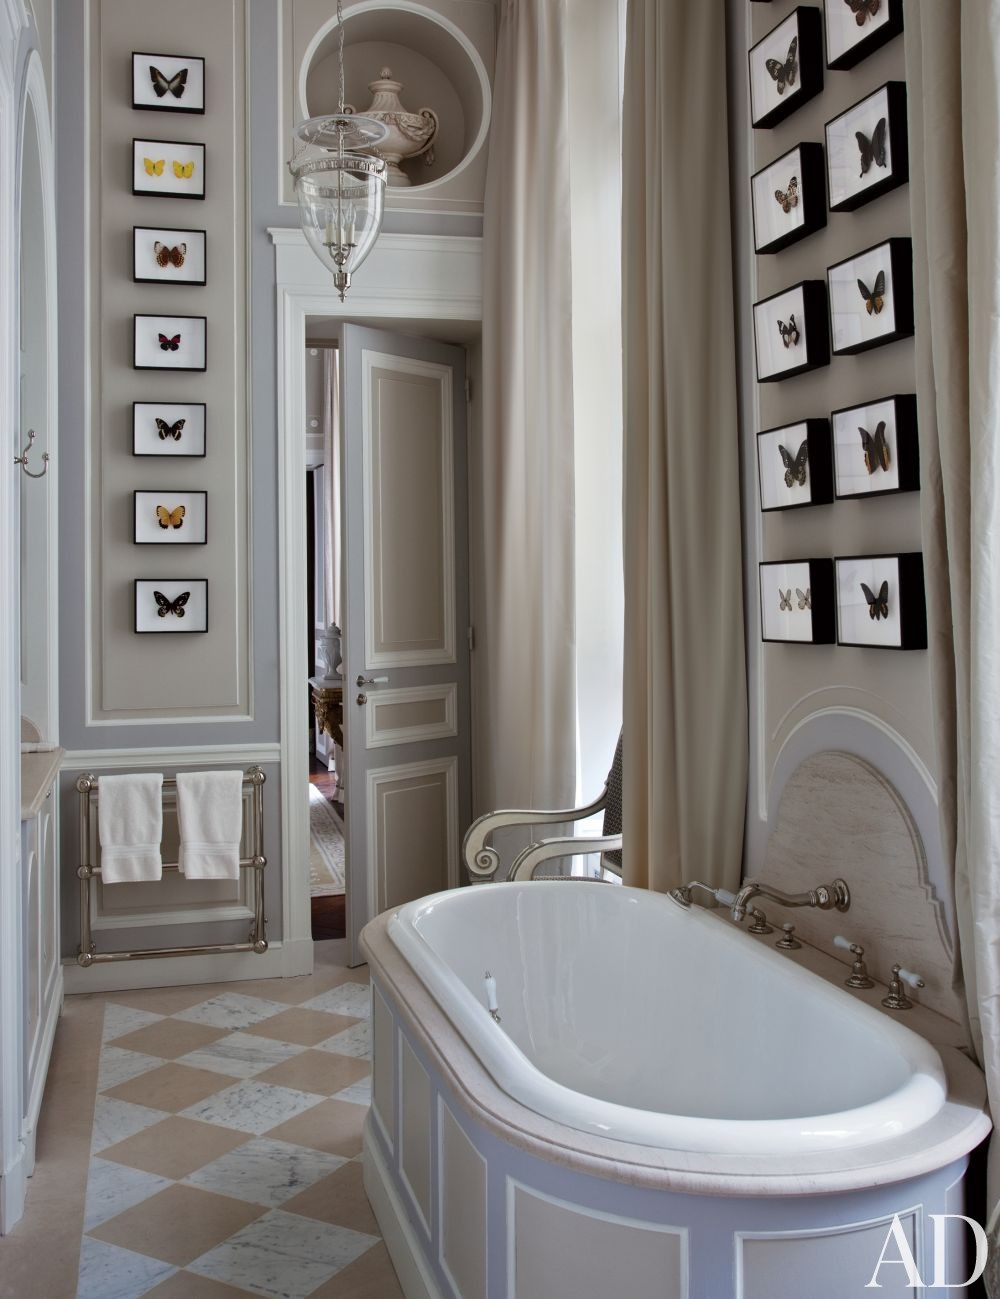 Traditional Bathroom by Jean-Louis Deniot in Paris, France